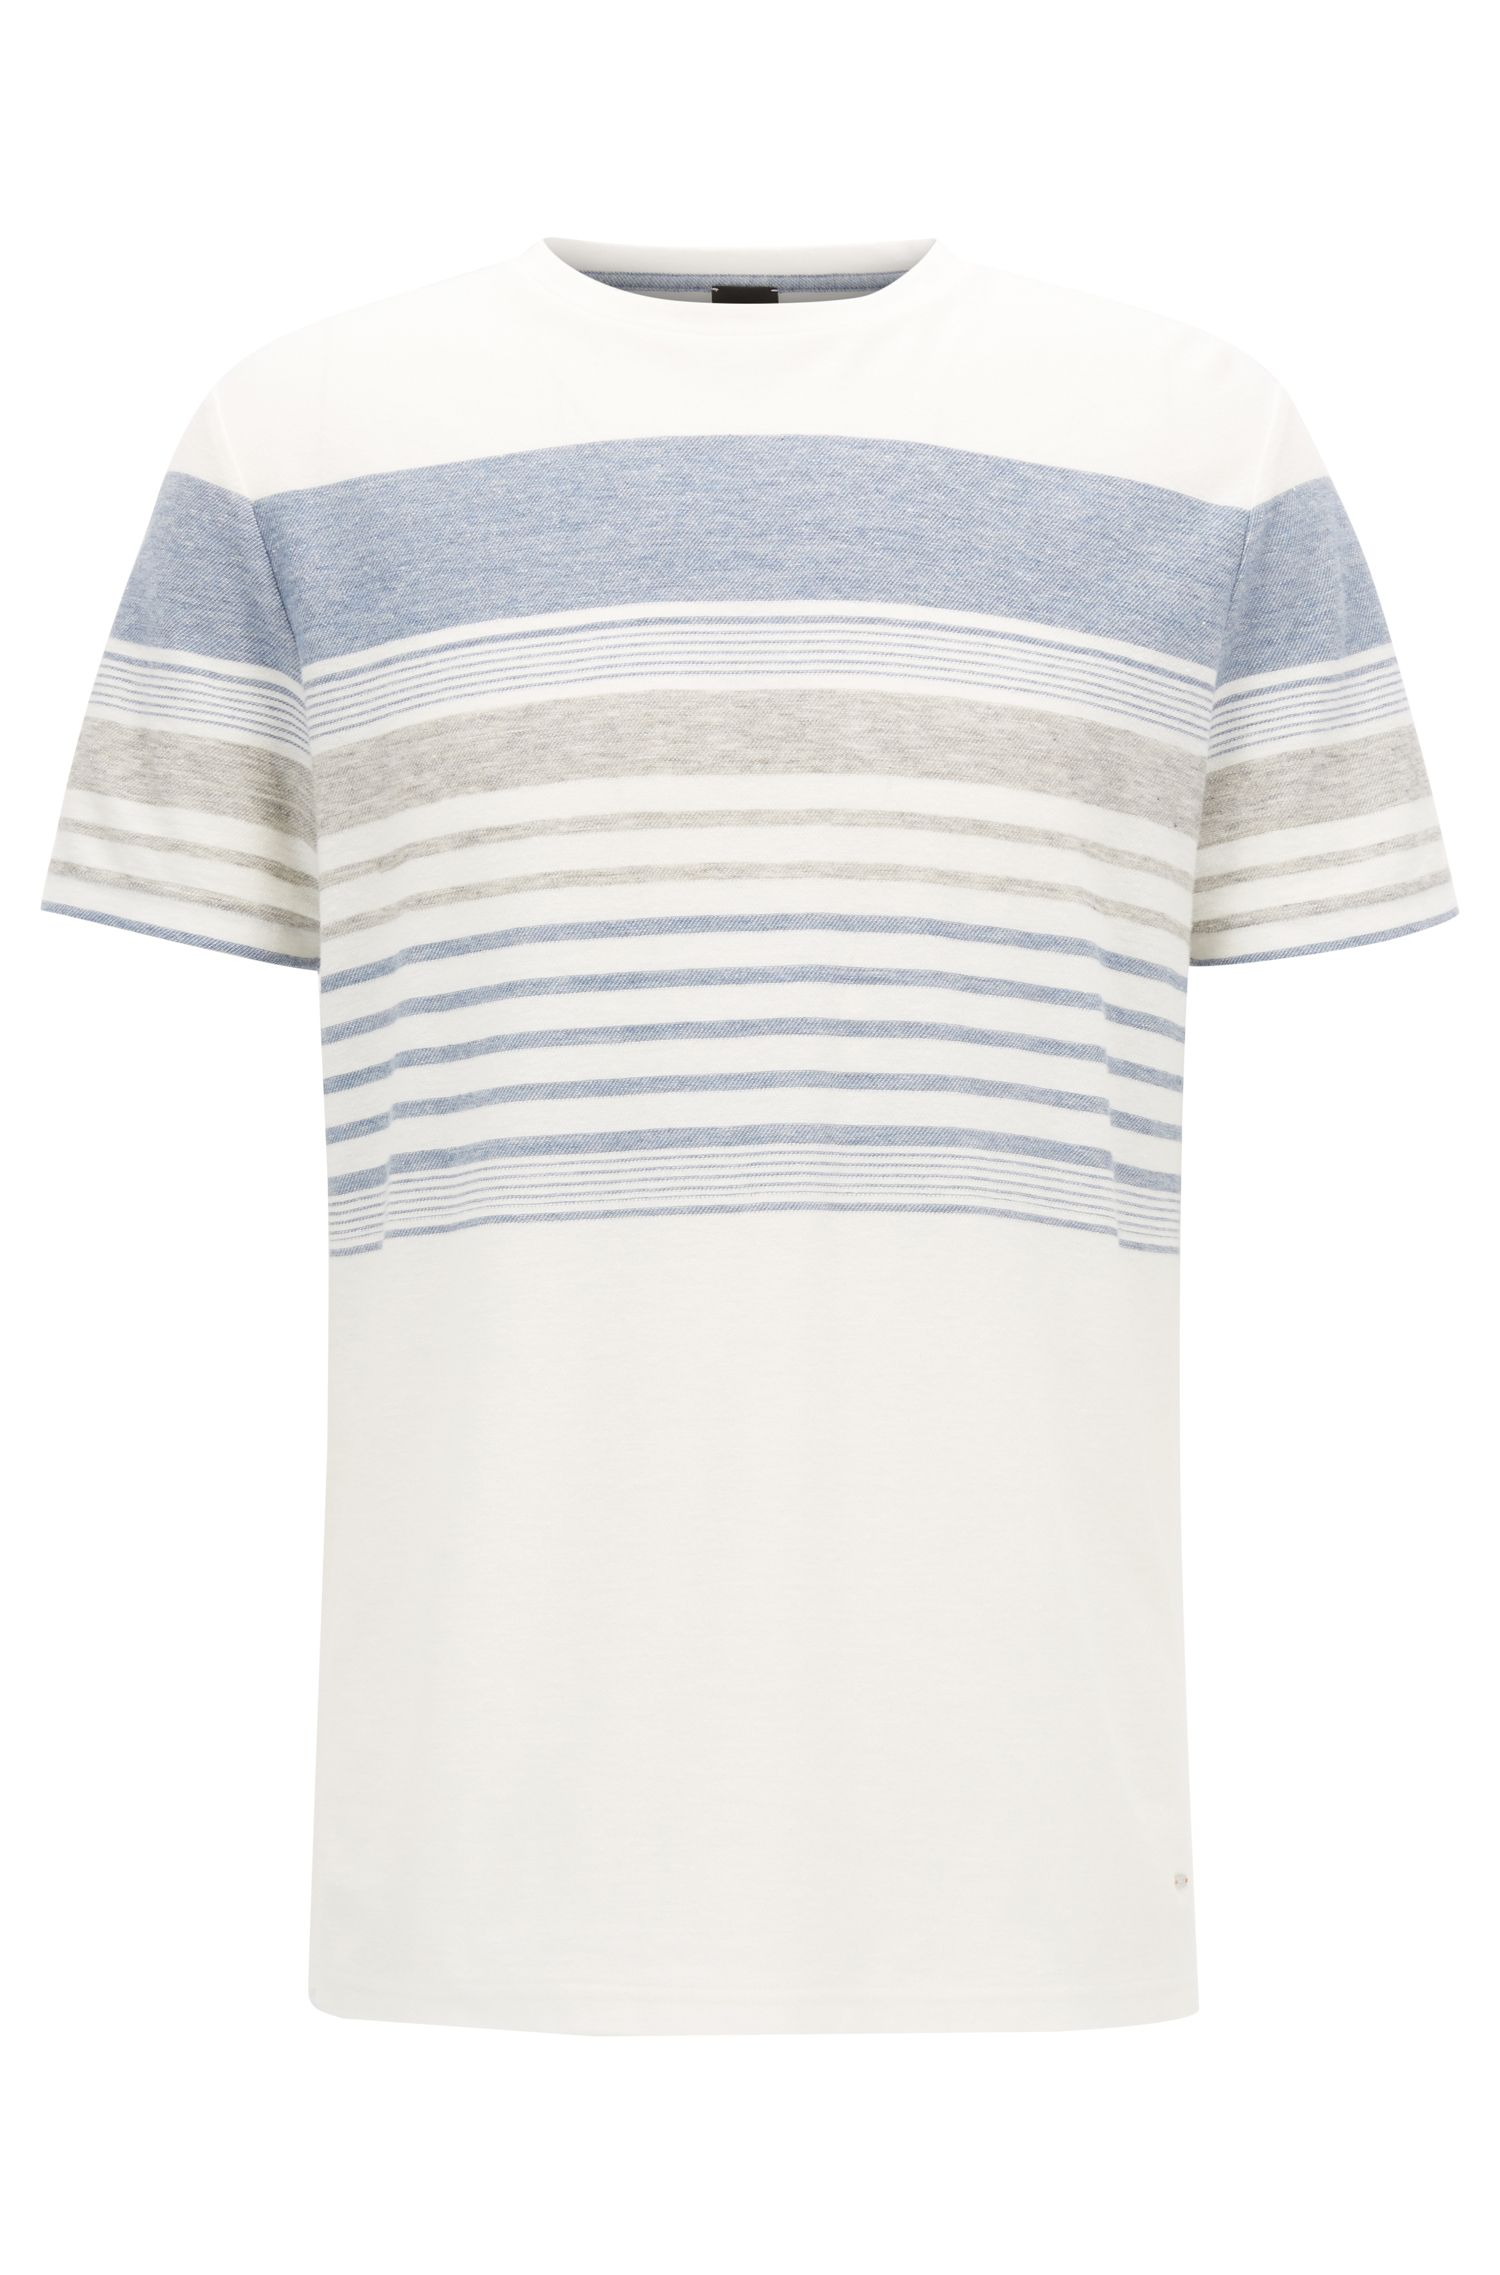 Relaxed-fit striped T-shirt in a cotton blend